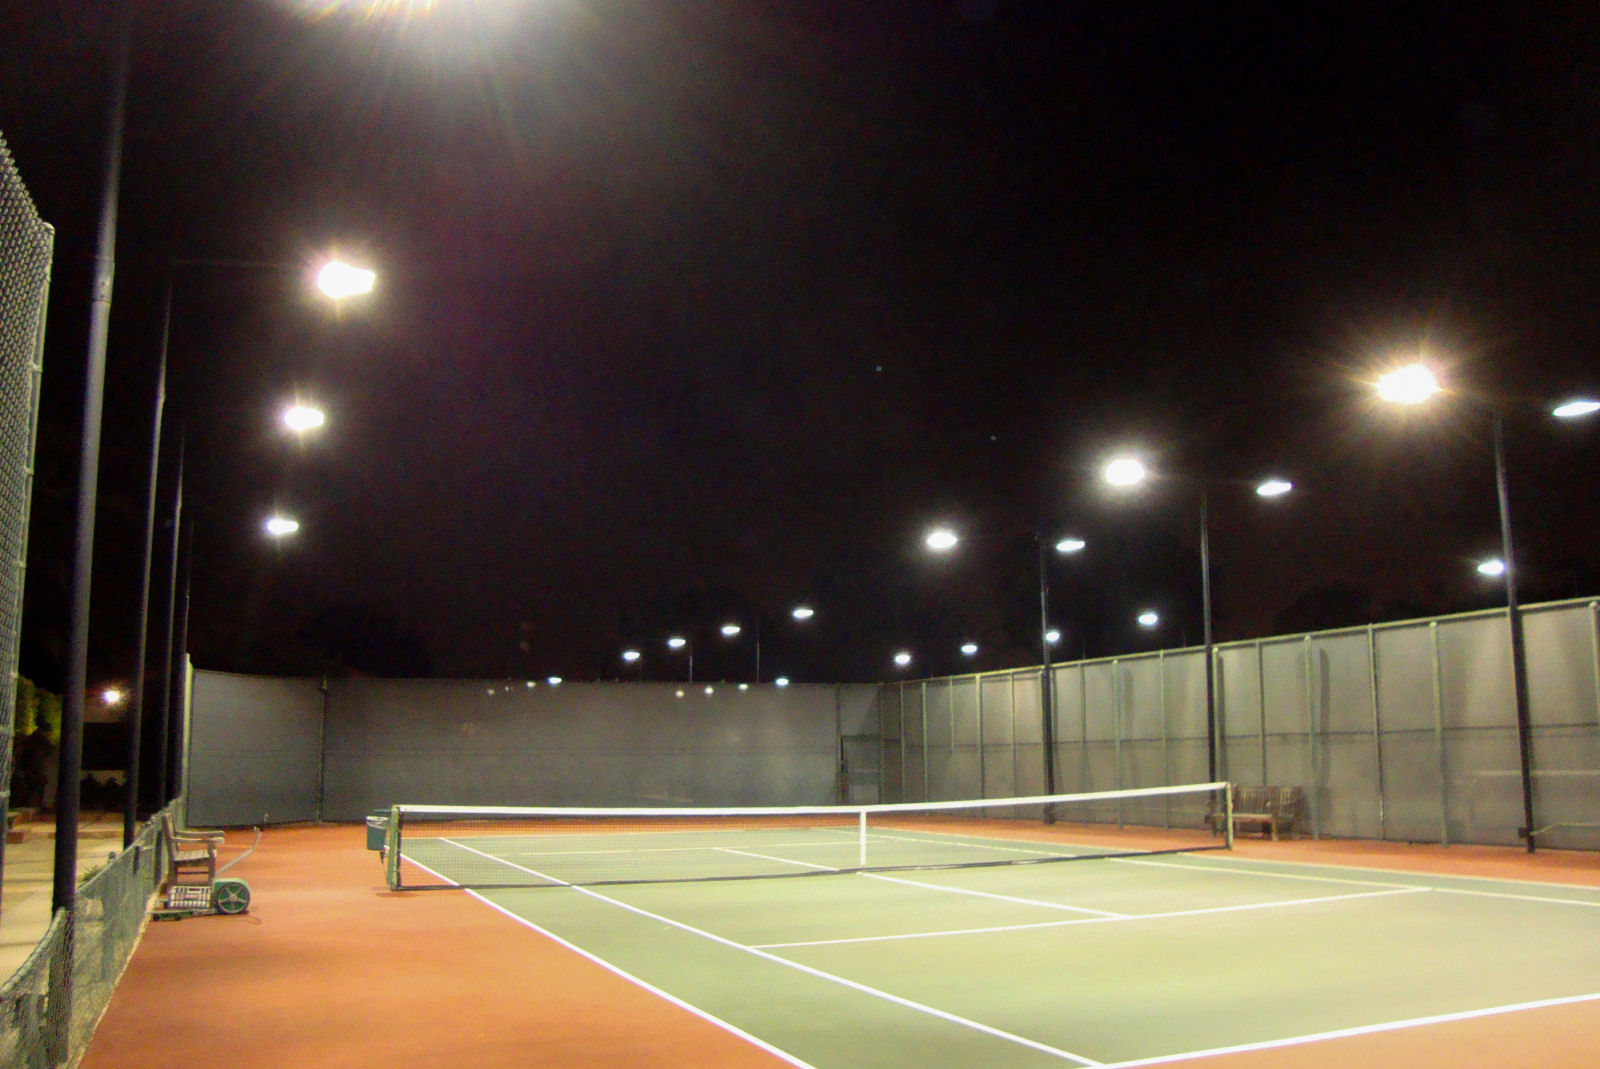 outdoor tennis court-7